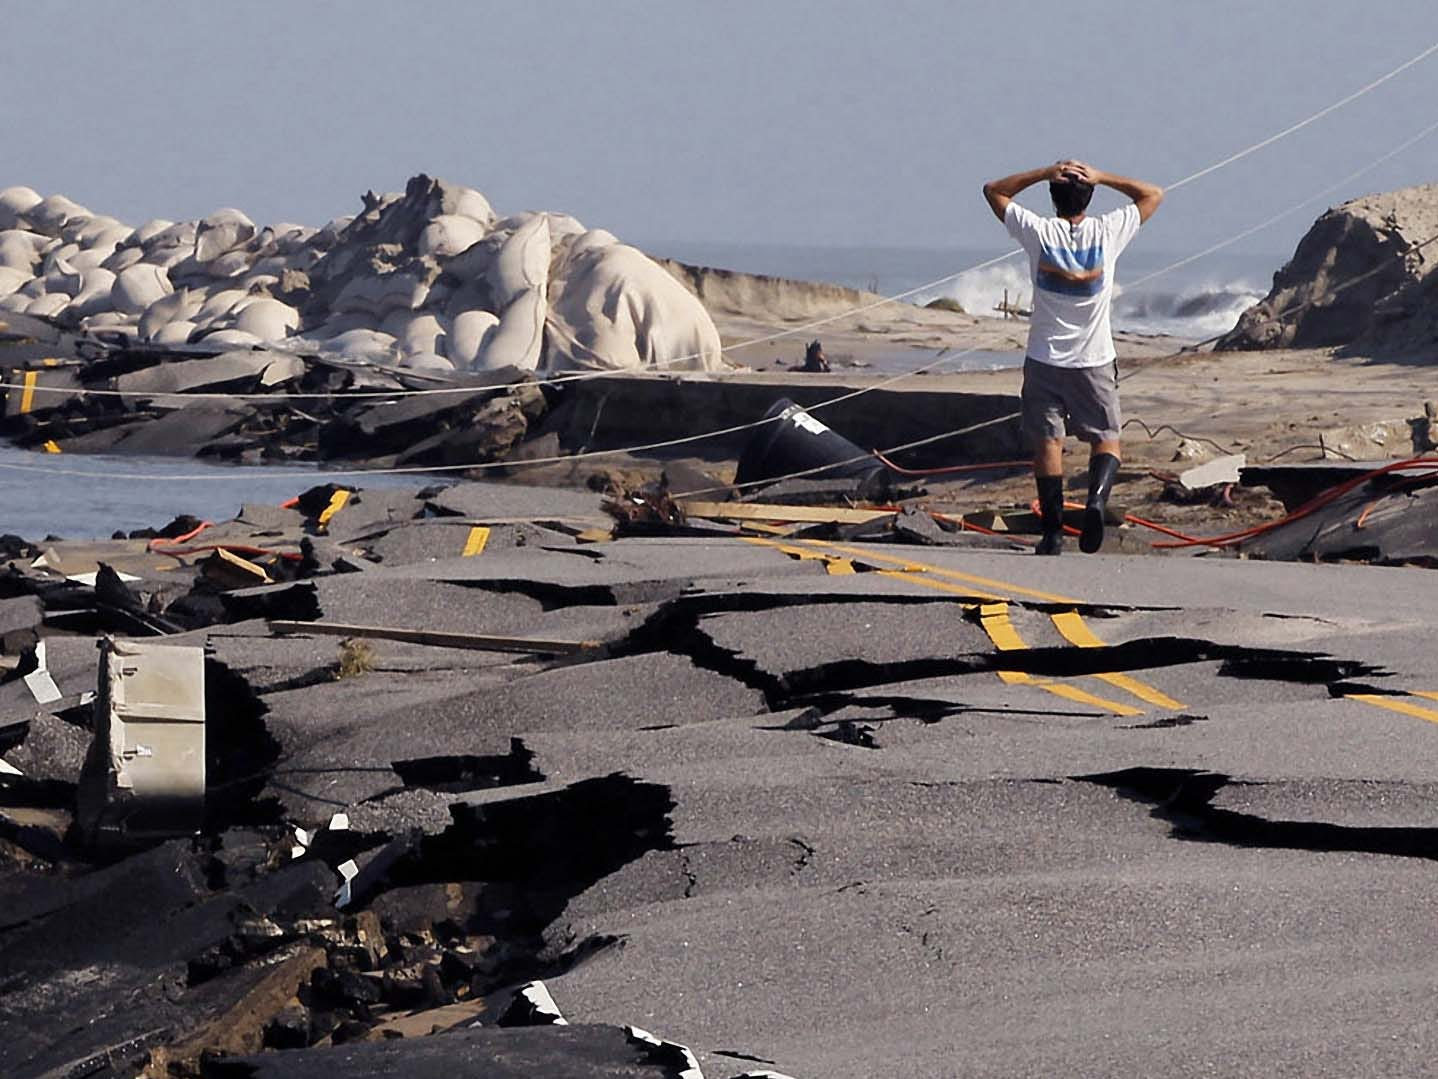 A man stares in disbelief at the destruction to N.C. Highway 12 on the north edge of town, Aug. 28, 2011, in Rodanthe, N.C. From North Carolina to New Jersey, Hurricane Irene's winds and storm surge fell short of the doomsday predictions. But the danger is far from over: With rivers still rising, severe flooding is feared across much of the East Coast over the next few days.